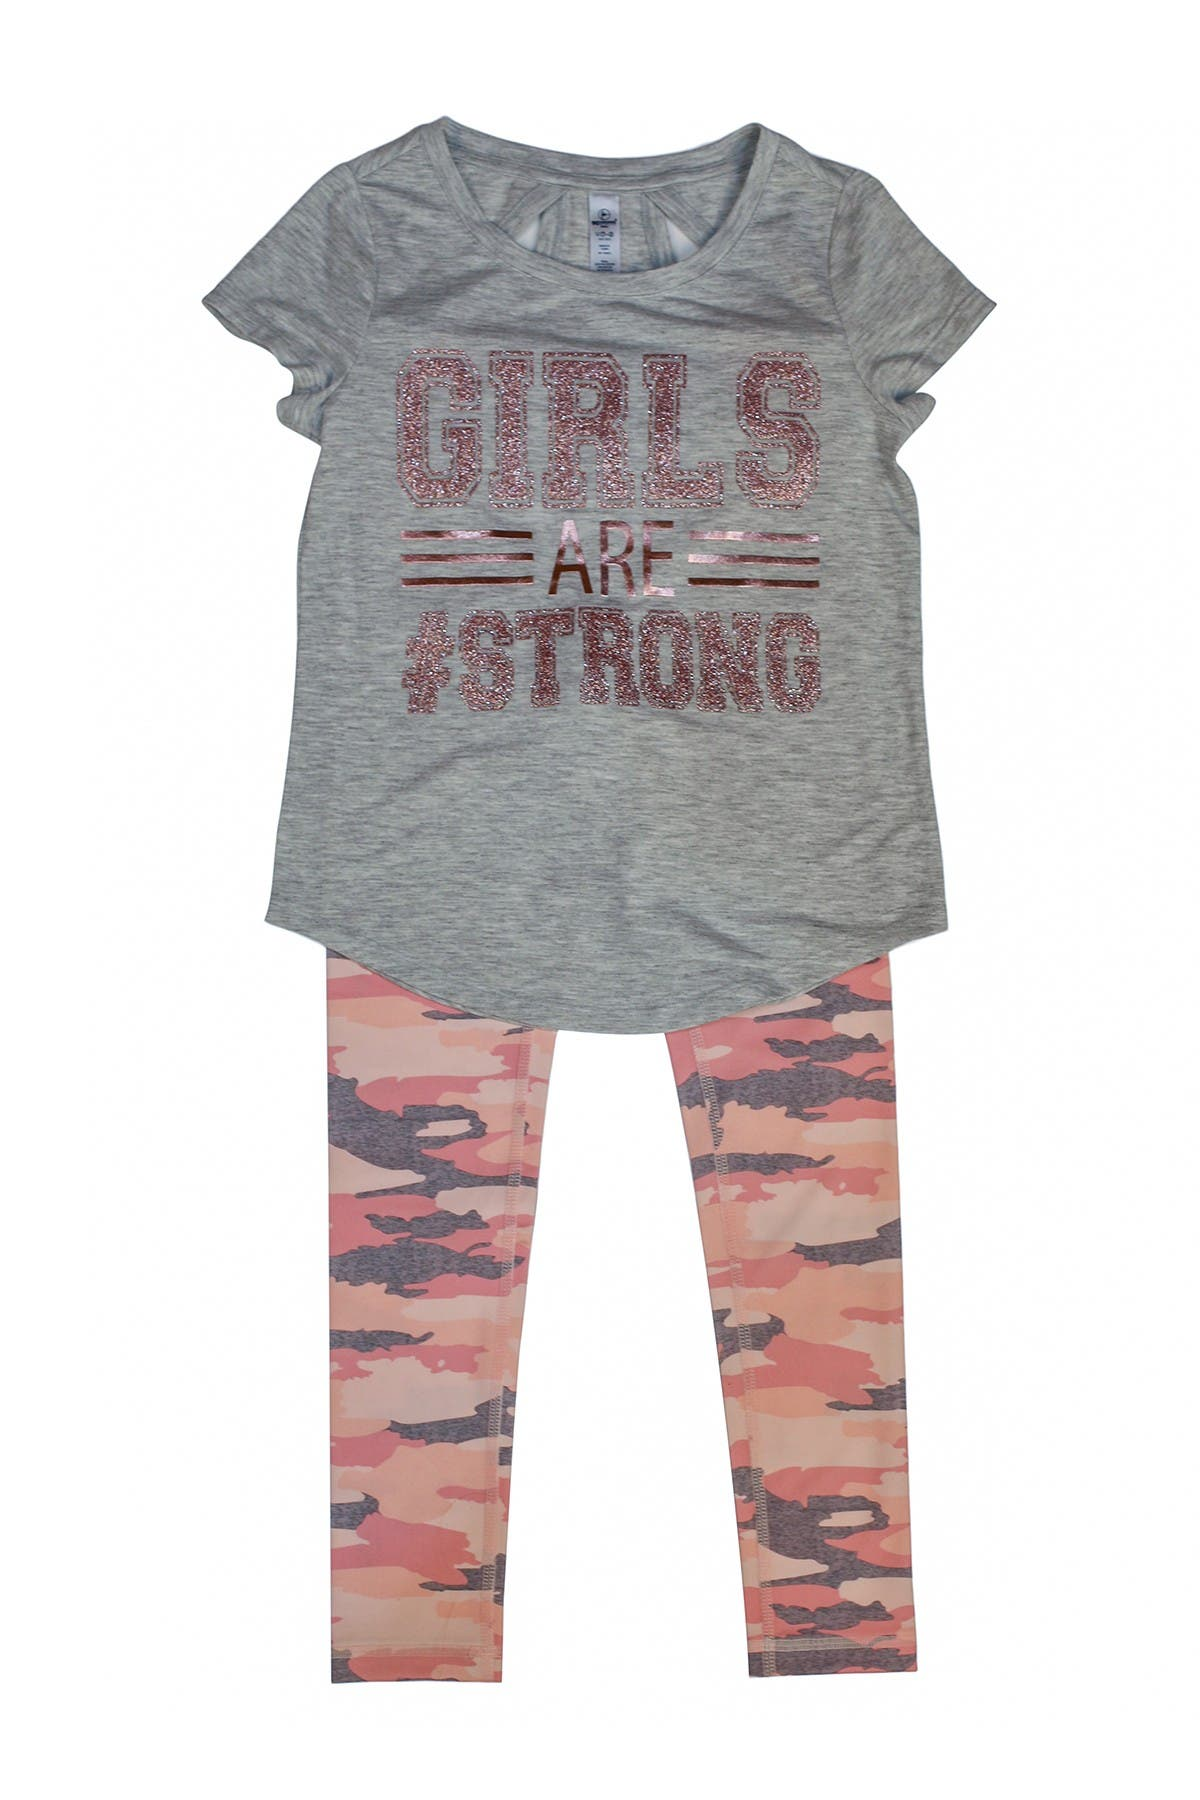 Image of 90 Degree By Reflex High Low Short Sleeve Top & Printed Legging Set